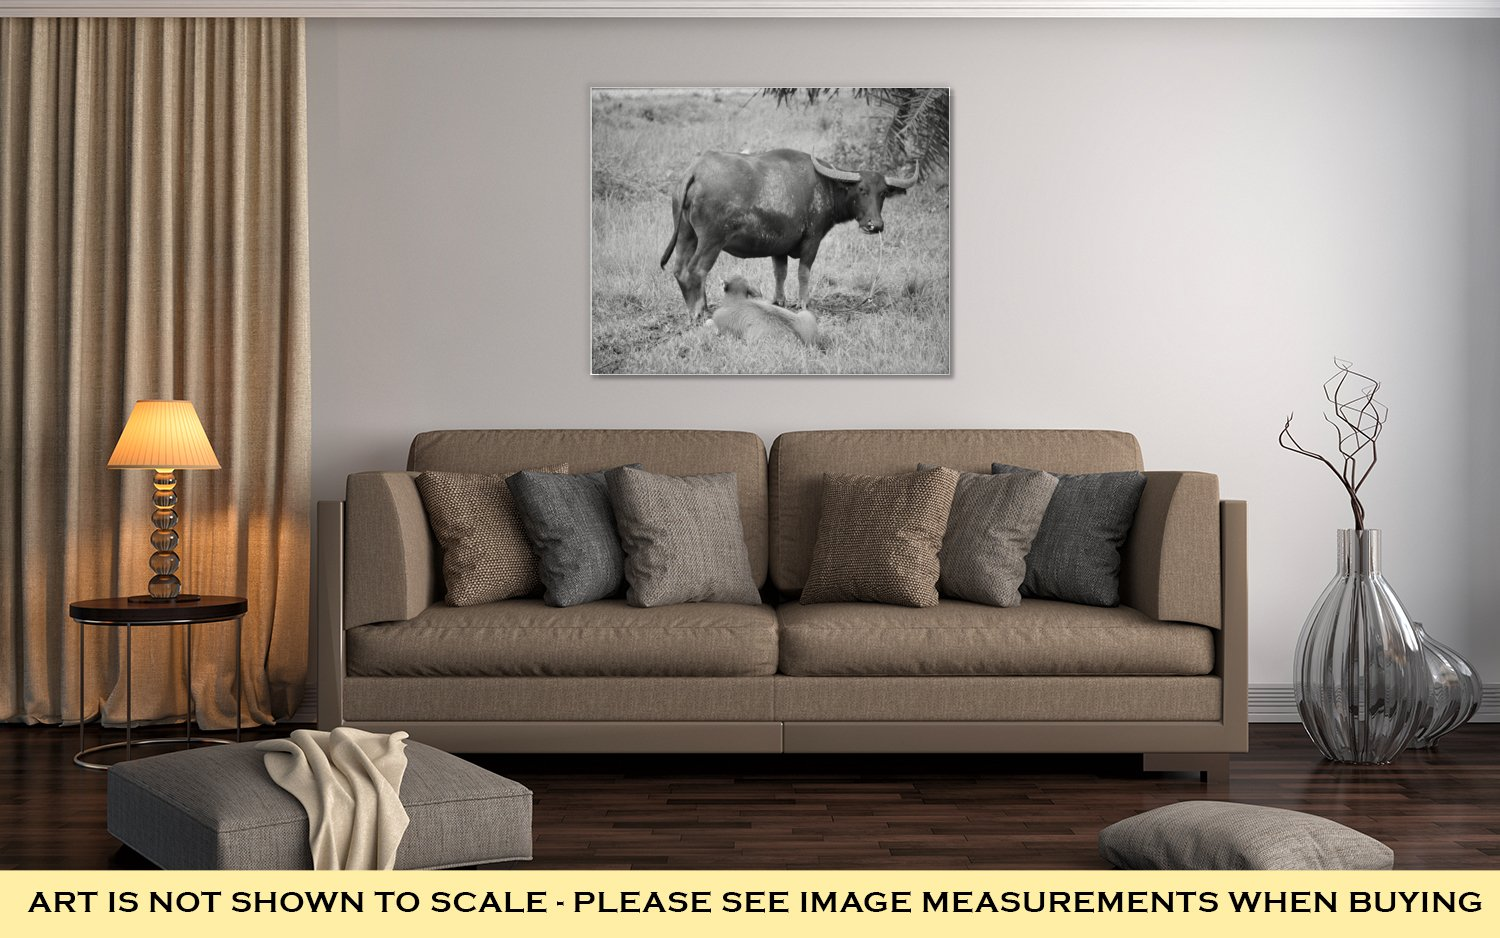 Ashley Canvas Thai Buffalo Walk Over The Field Go Back Home With Sunset Life Machine Of, Wall Art Home Decor, Ready to Hang, Black/White, 16x20, AG6343405